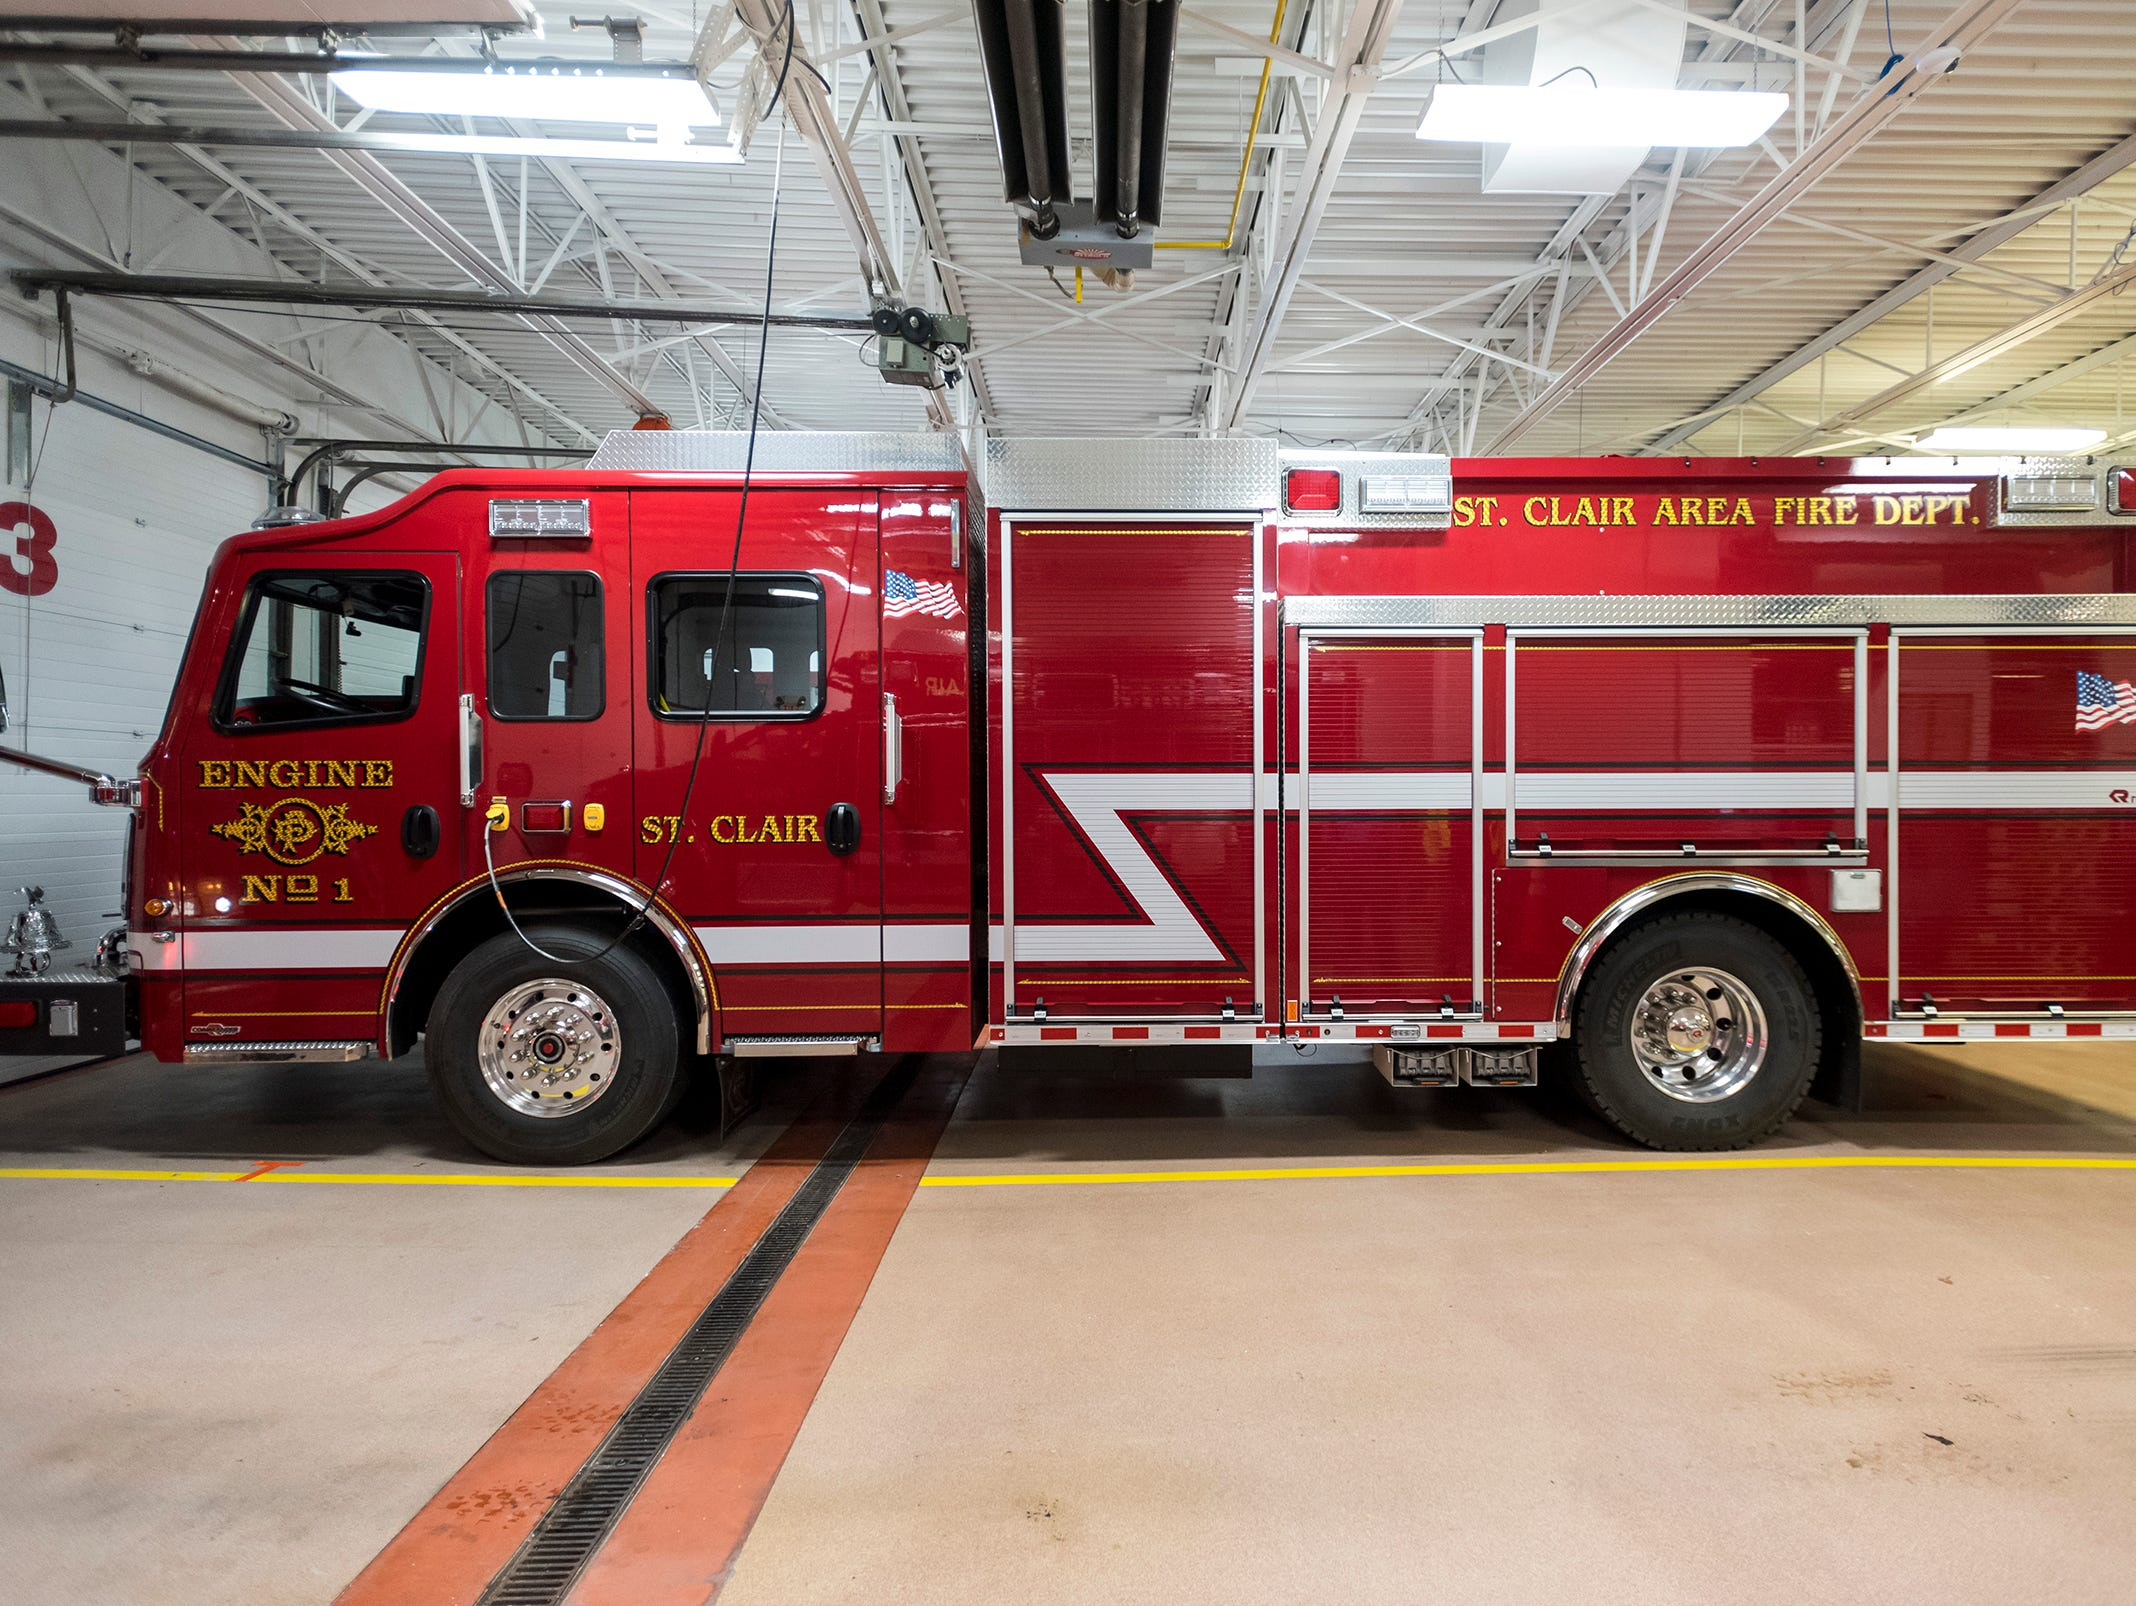 St. Clair Fire Department's new Rosenbauer pumper truck, pictured Wednesday, Nov. 7, 2018 at the department. The St. Clair Area Fire Authority began the design process for the truck about two years ago, and teh department took possession of it in September.